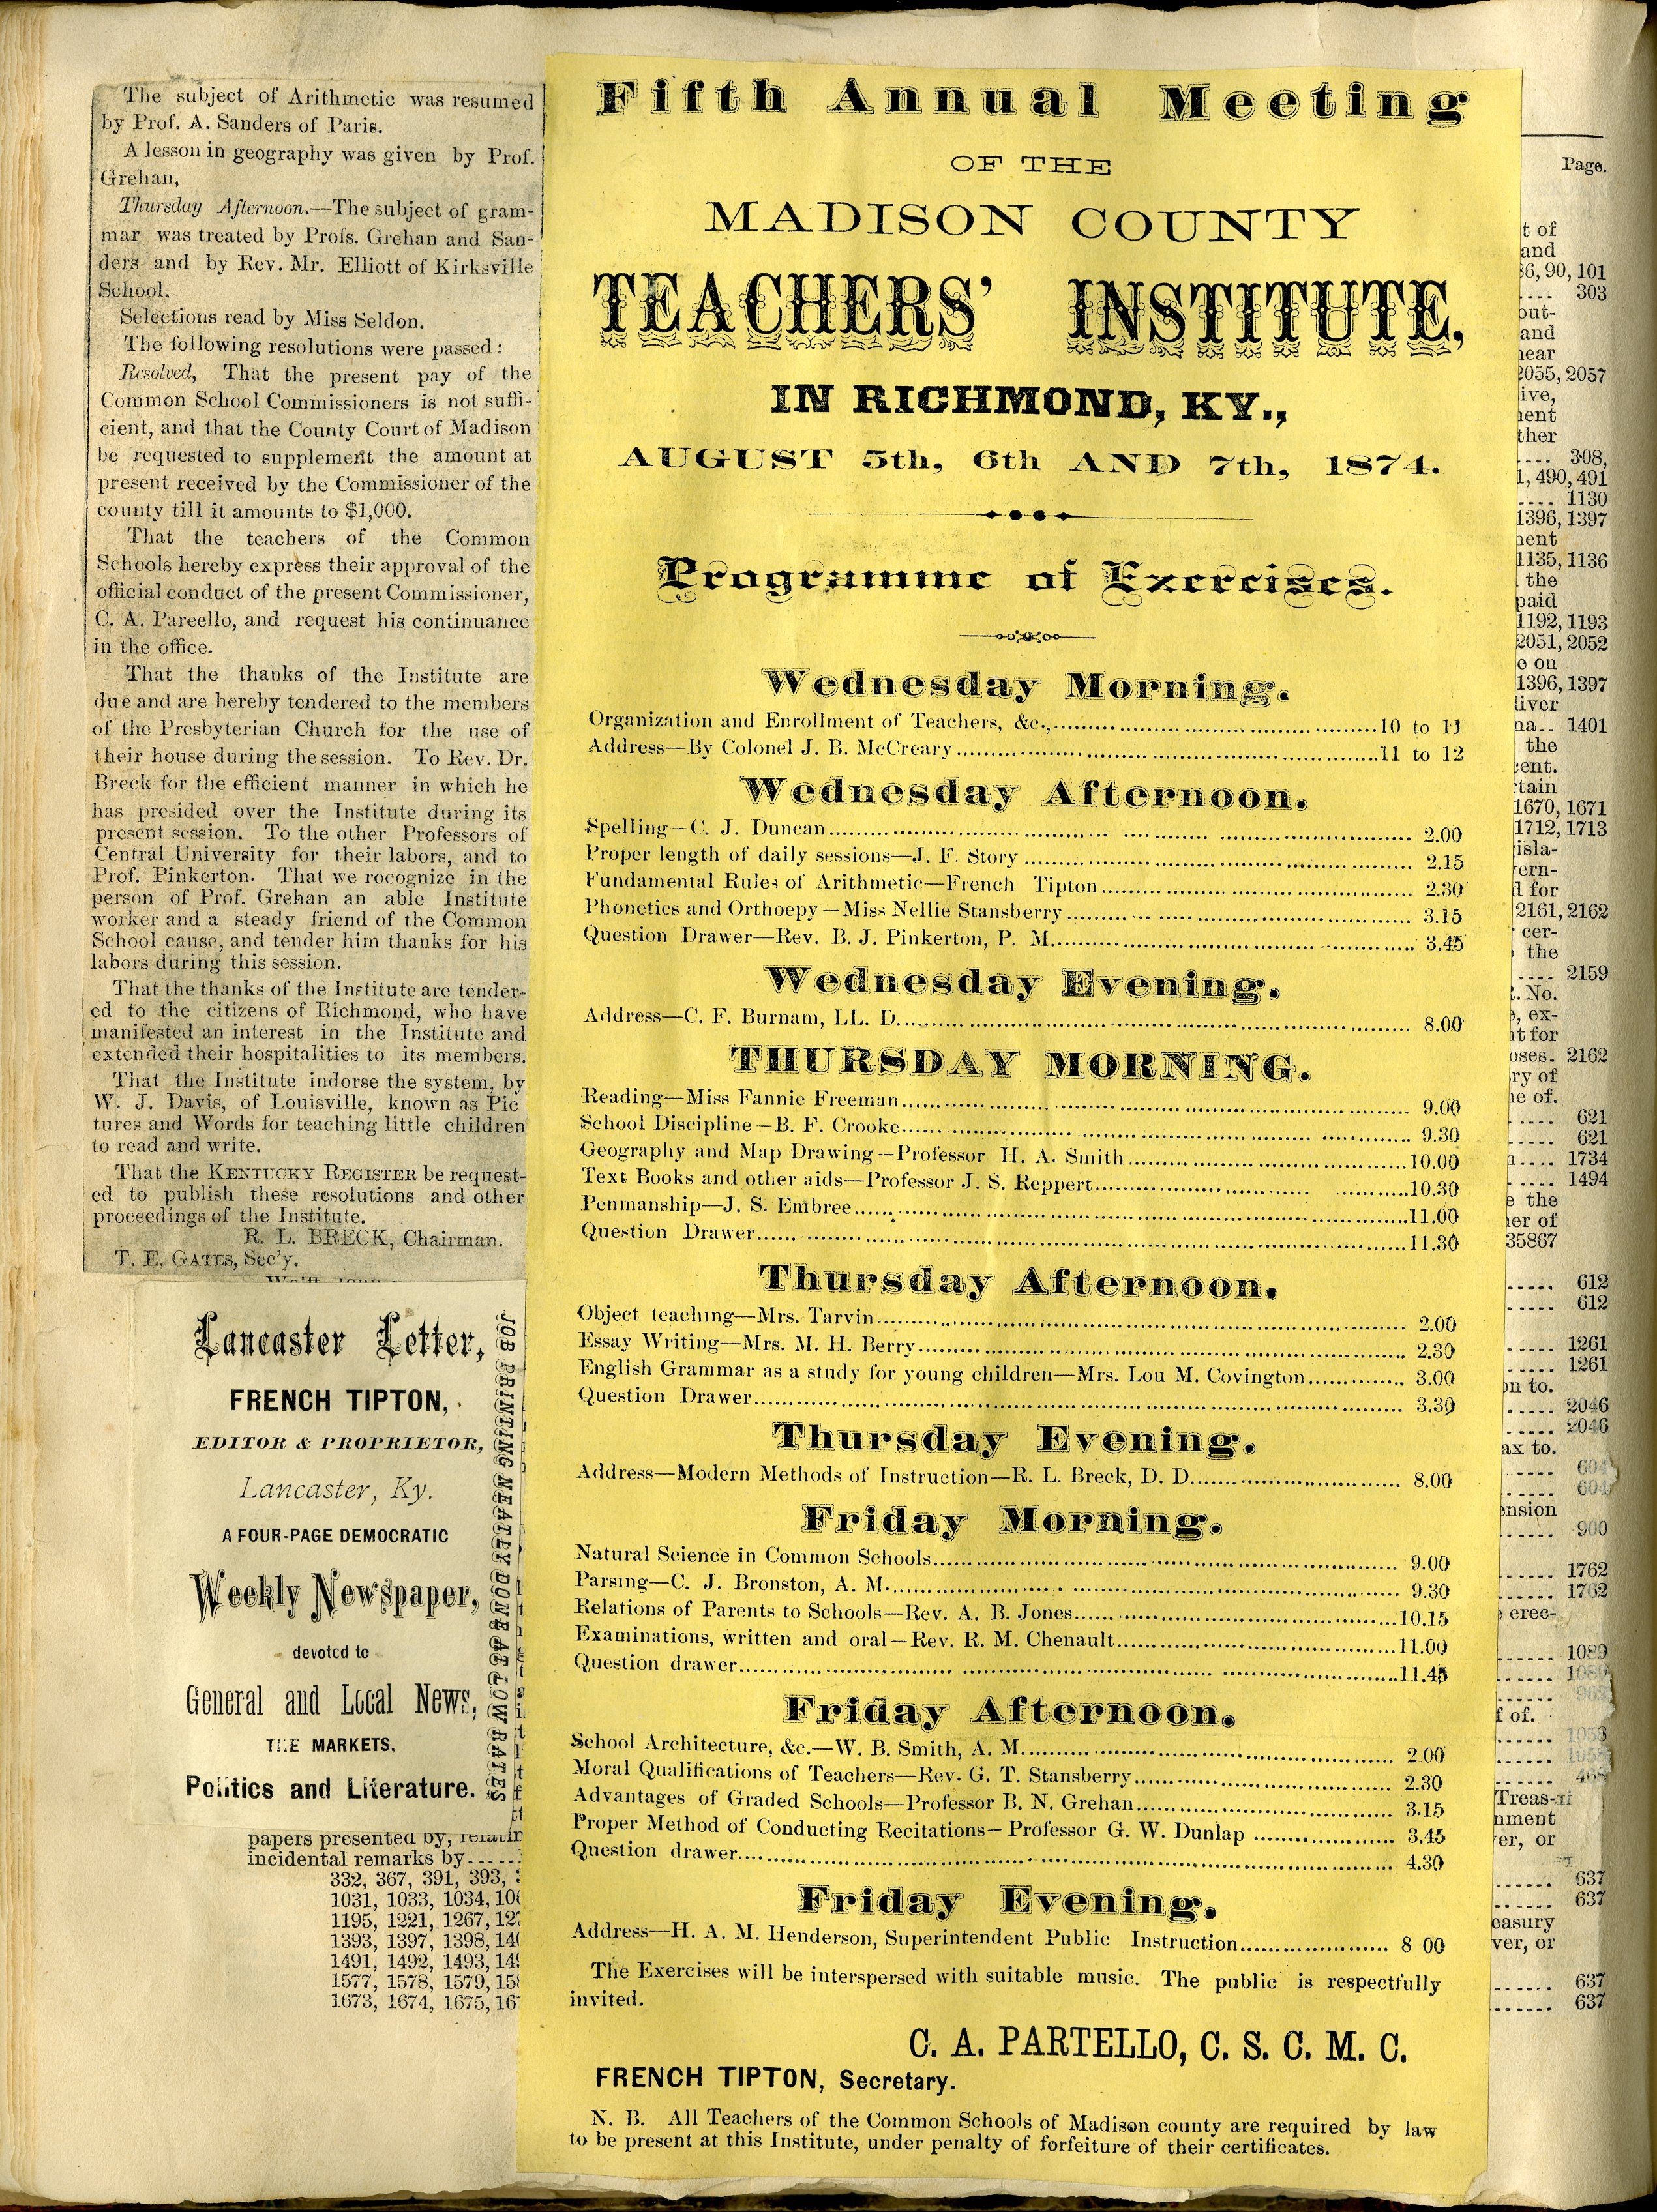 Scrapbooks: Comparing 19th century primary sources to 21st social media